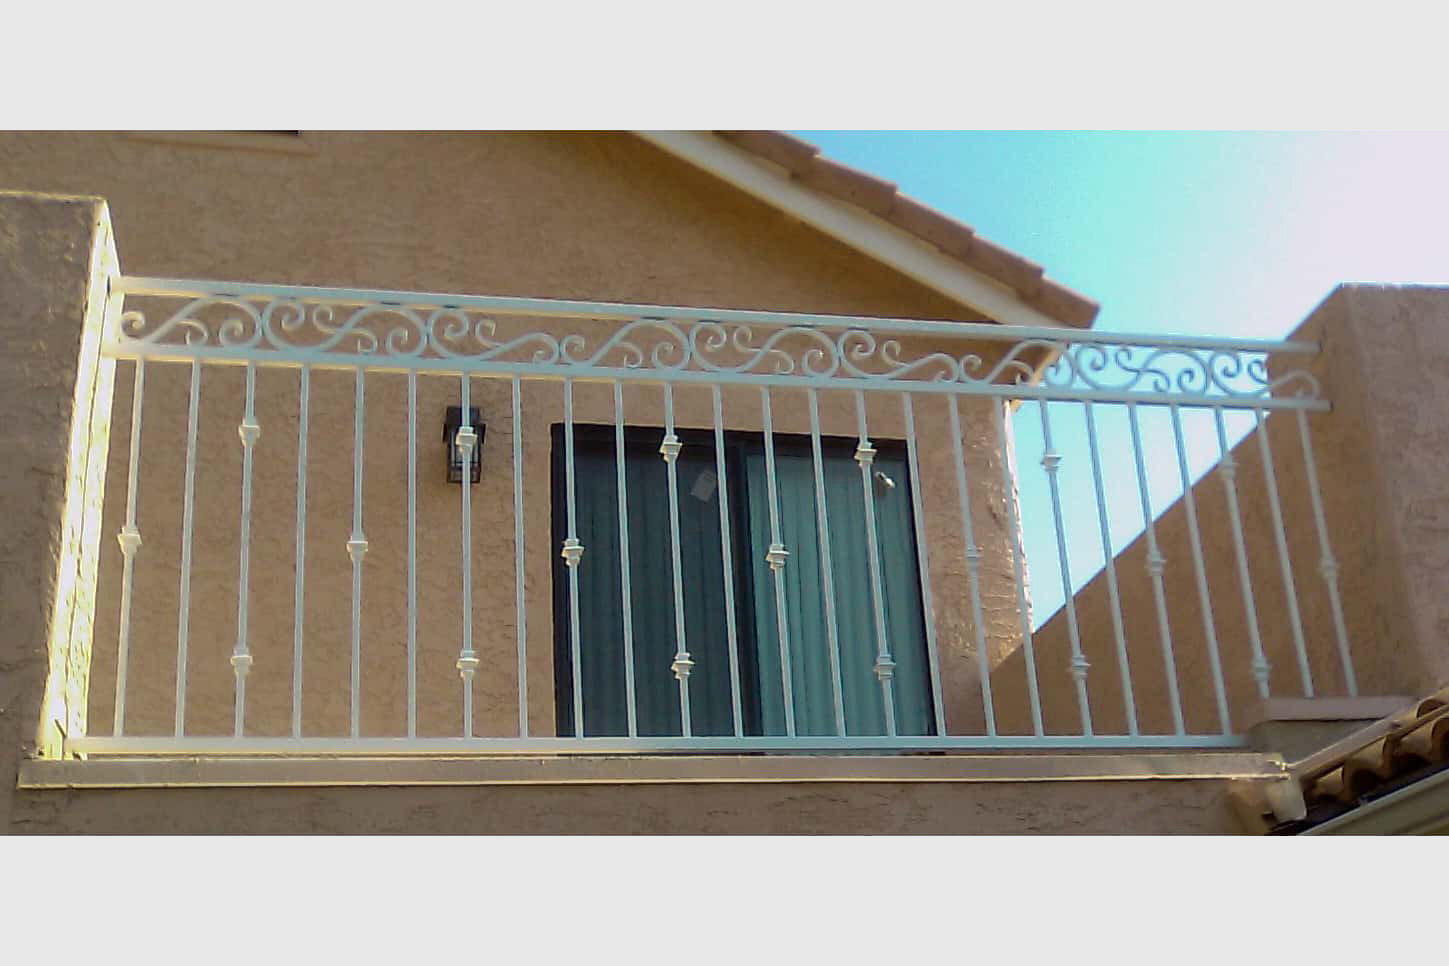 3-Rail Ornamental Iron Deck Railing